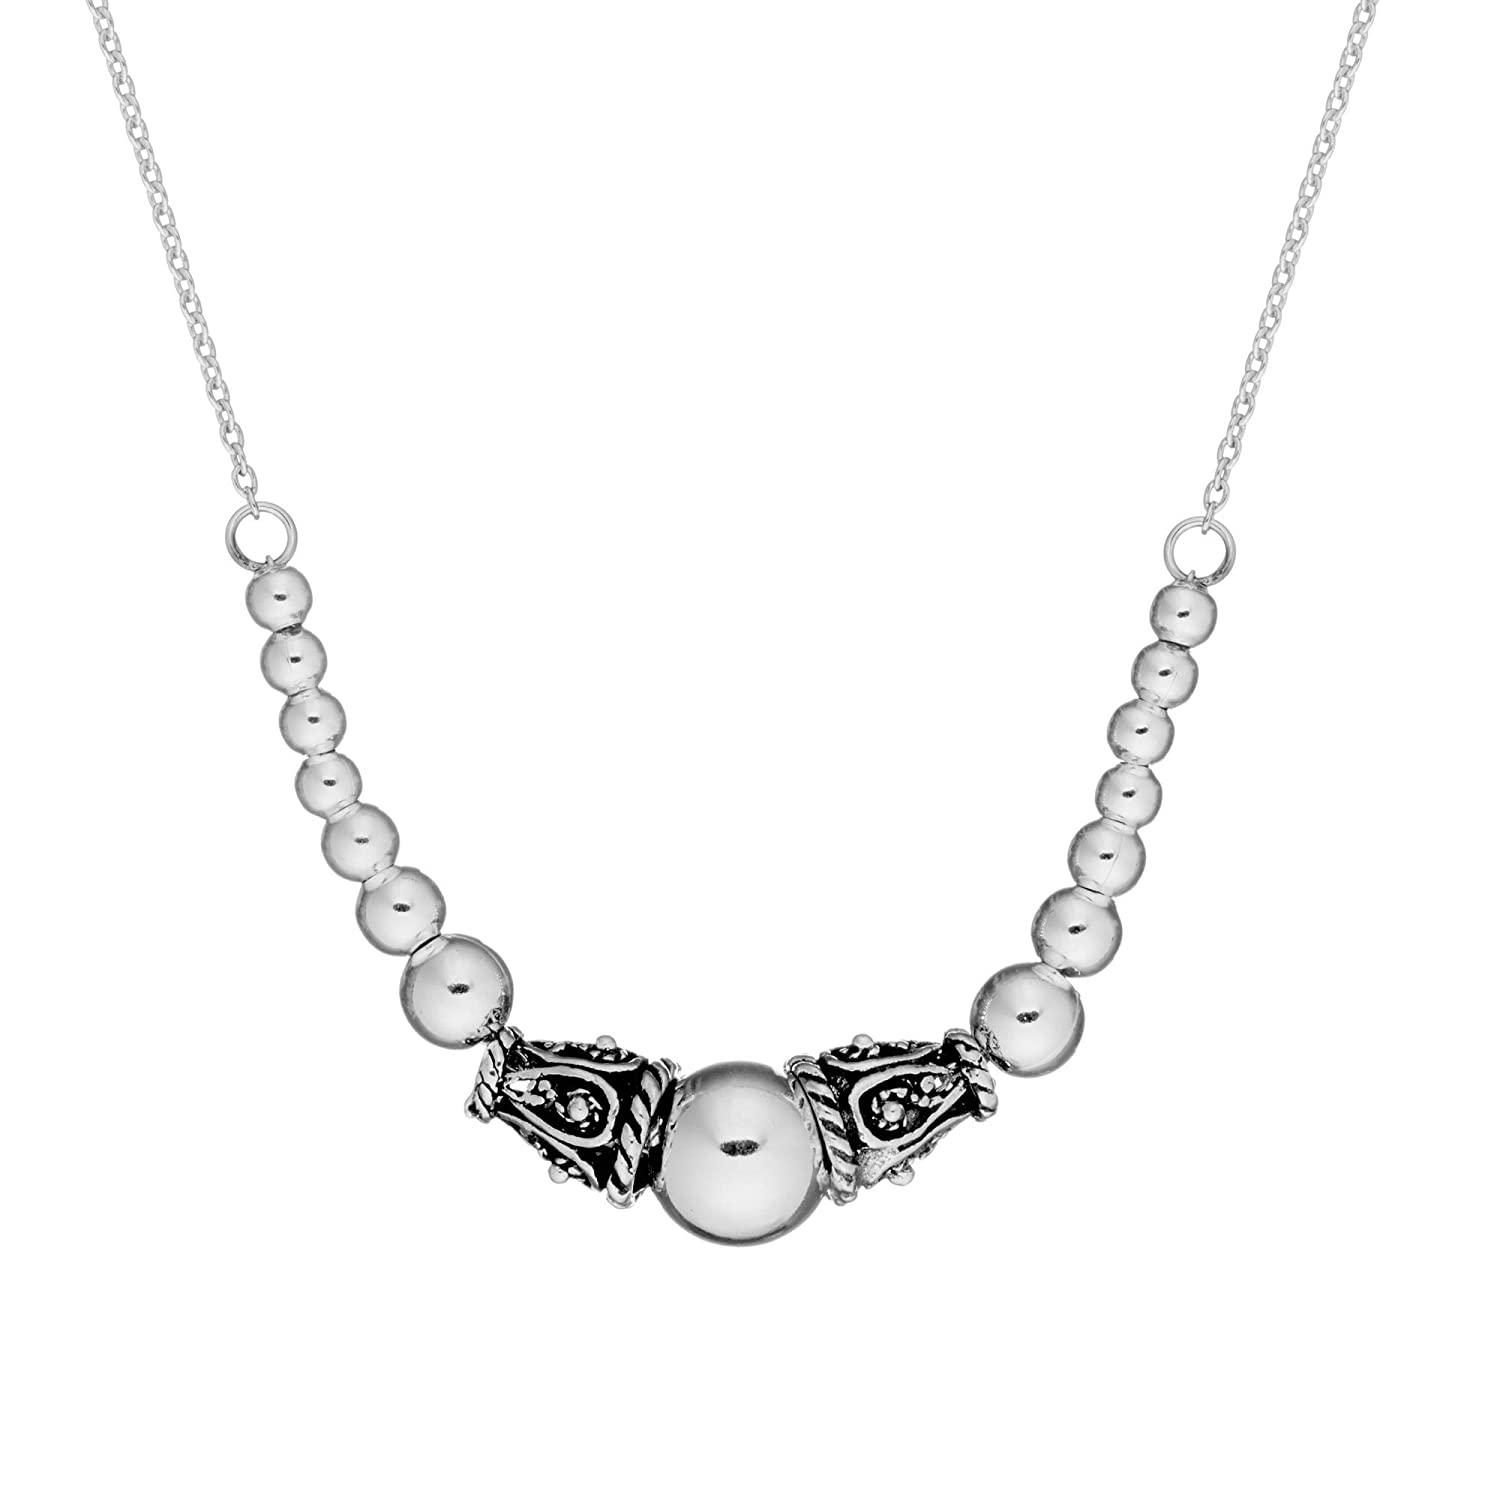 Silverly Women's .925 Sterling Silver Bali Beaded Ball Rolo Chain Necklace, 17 + 0.5 Extender 17 + 0.5 Extender 01rbSSN001